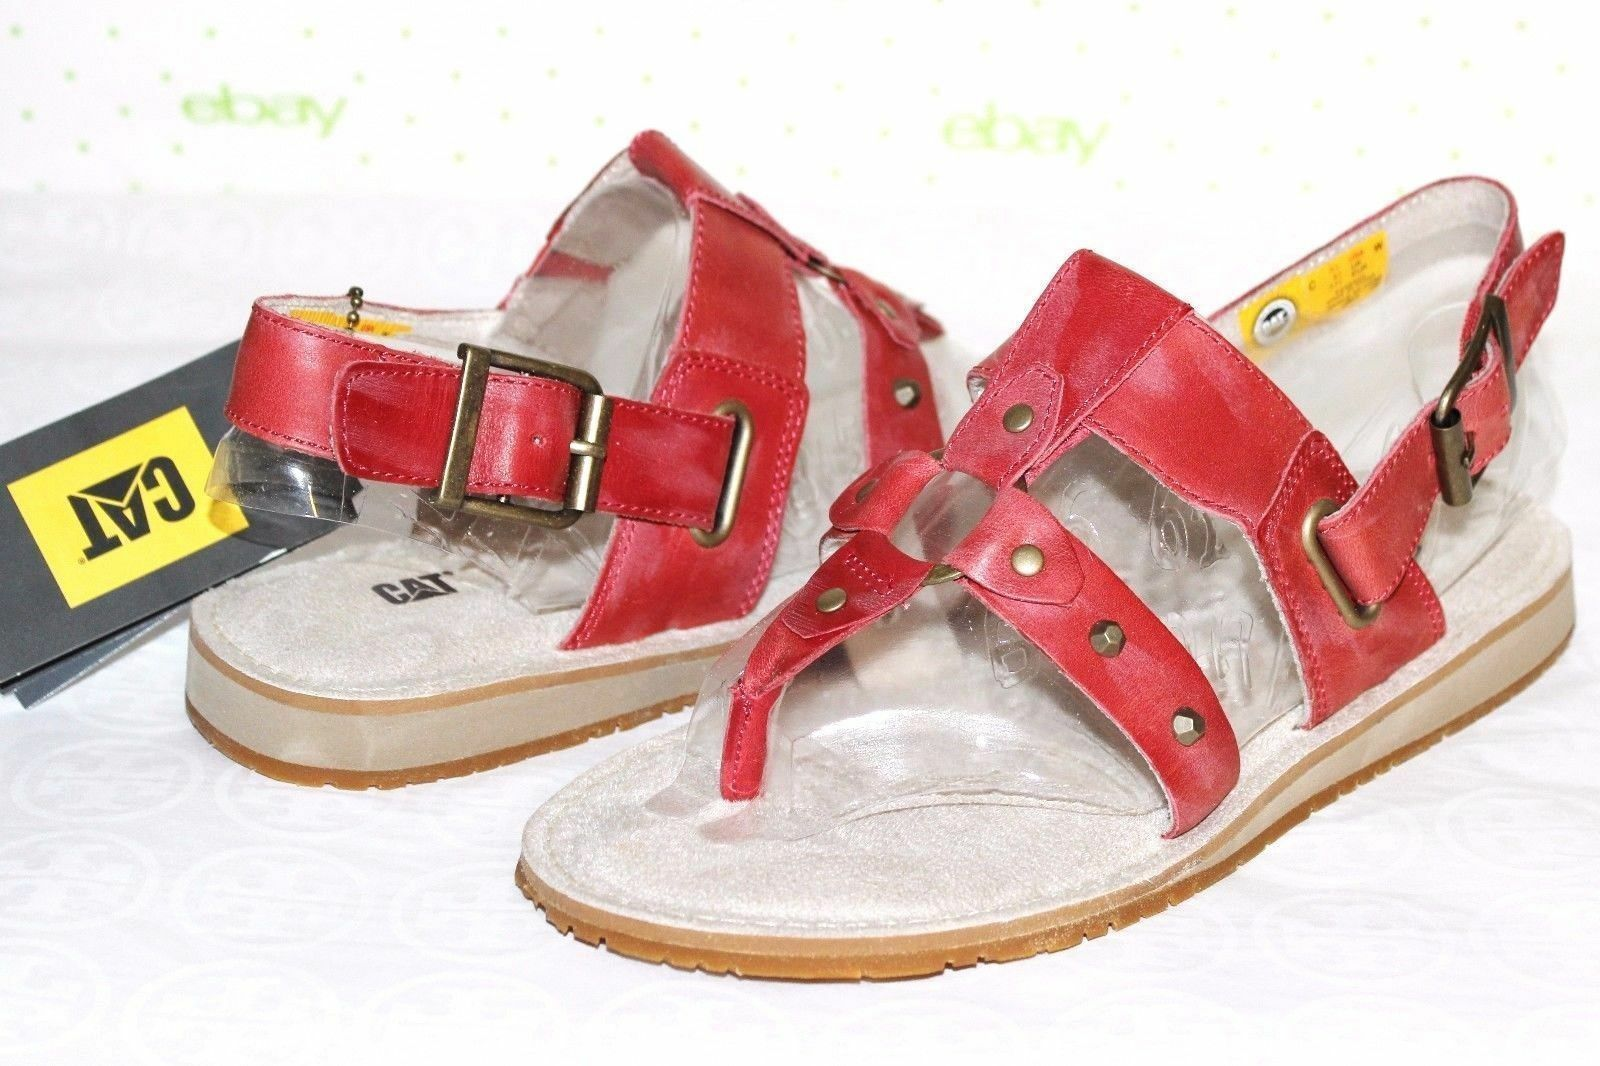 CATERPILLAR Birdsong Studded Antiqued-Red Leather Sandals 9.5 M NEW  L@@K